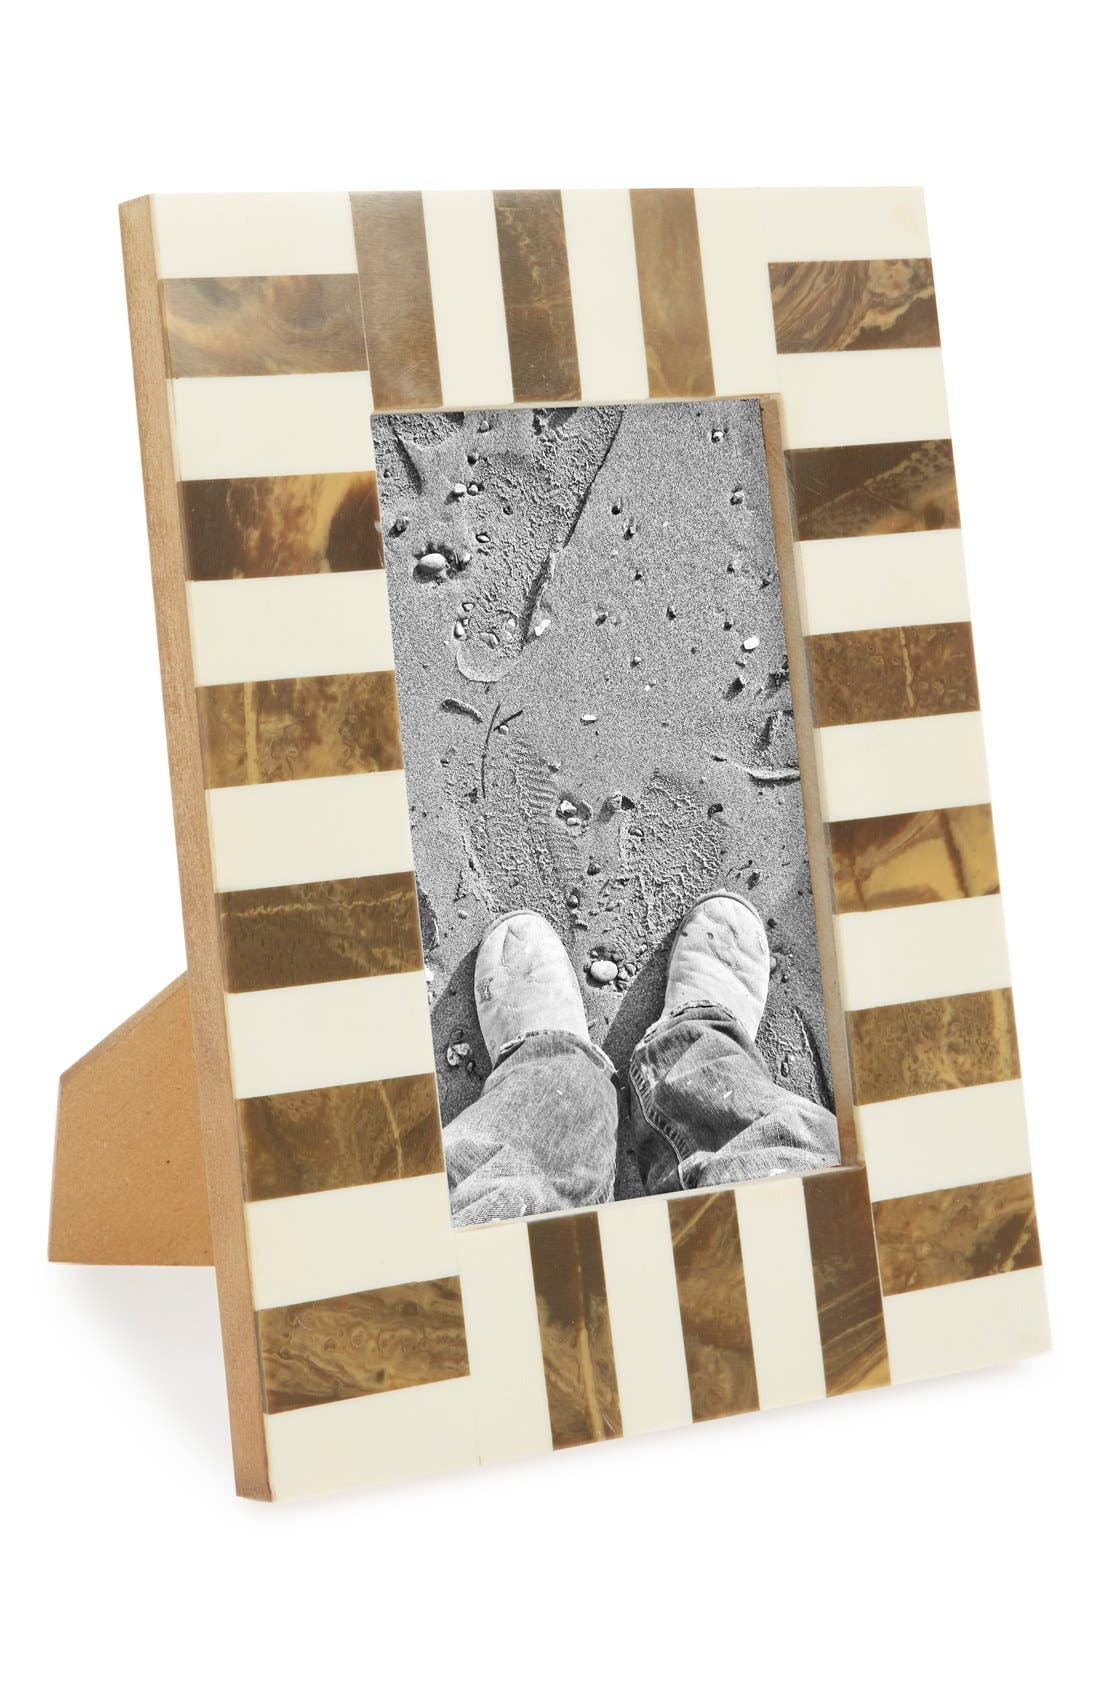 Alternate Image 1 Selected - MG Décor Horn & Wooden Picture Frame (4x6) (Nordstrom Exclusive)